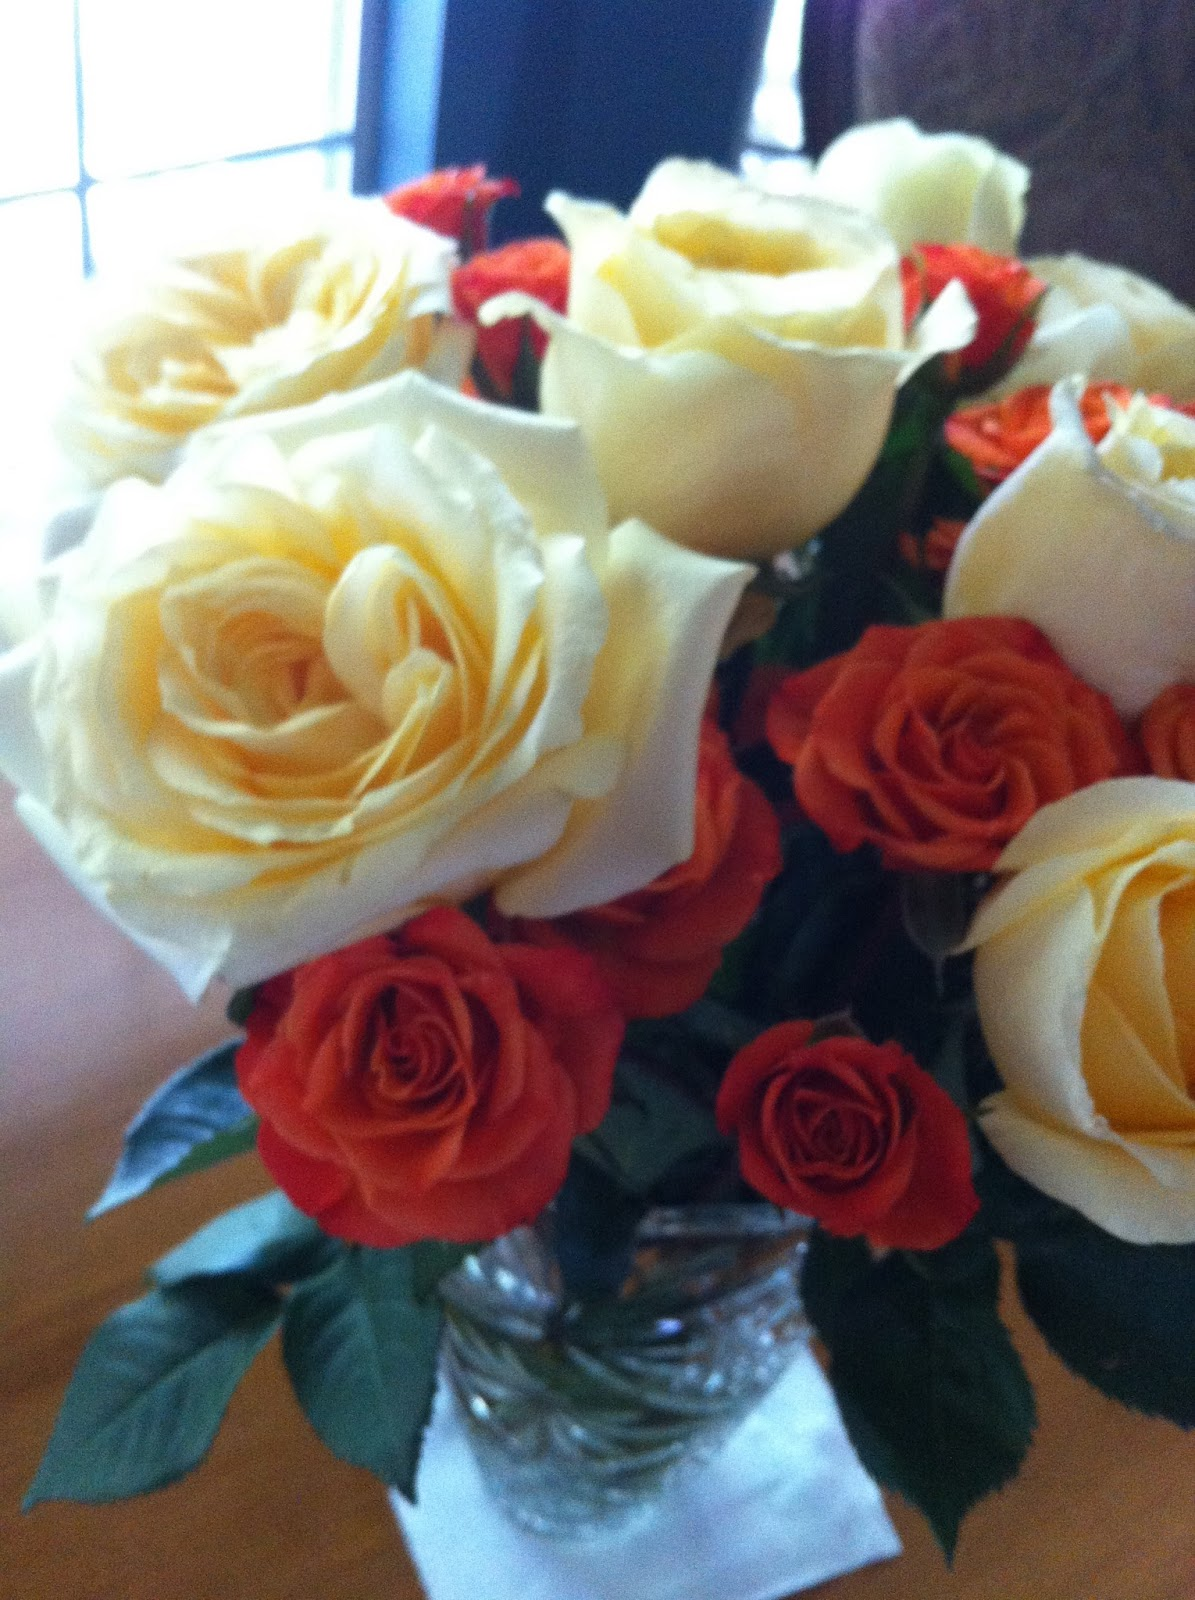 40 Shades of Pink: Fresh flowers from Walmart